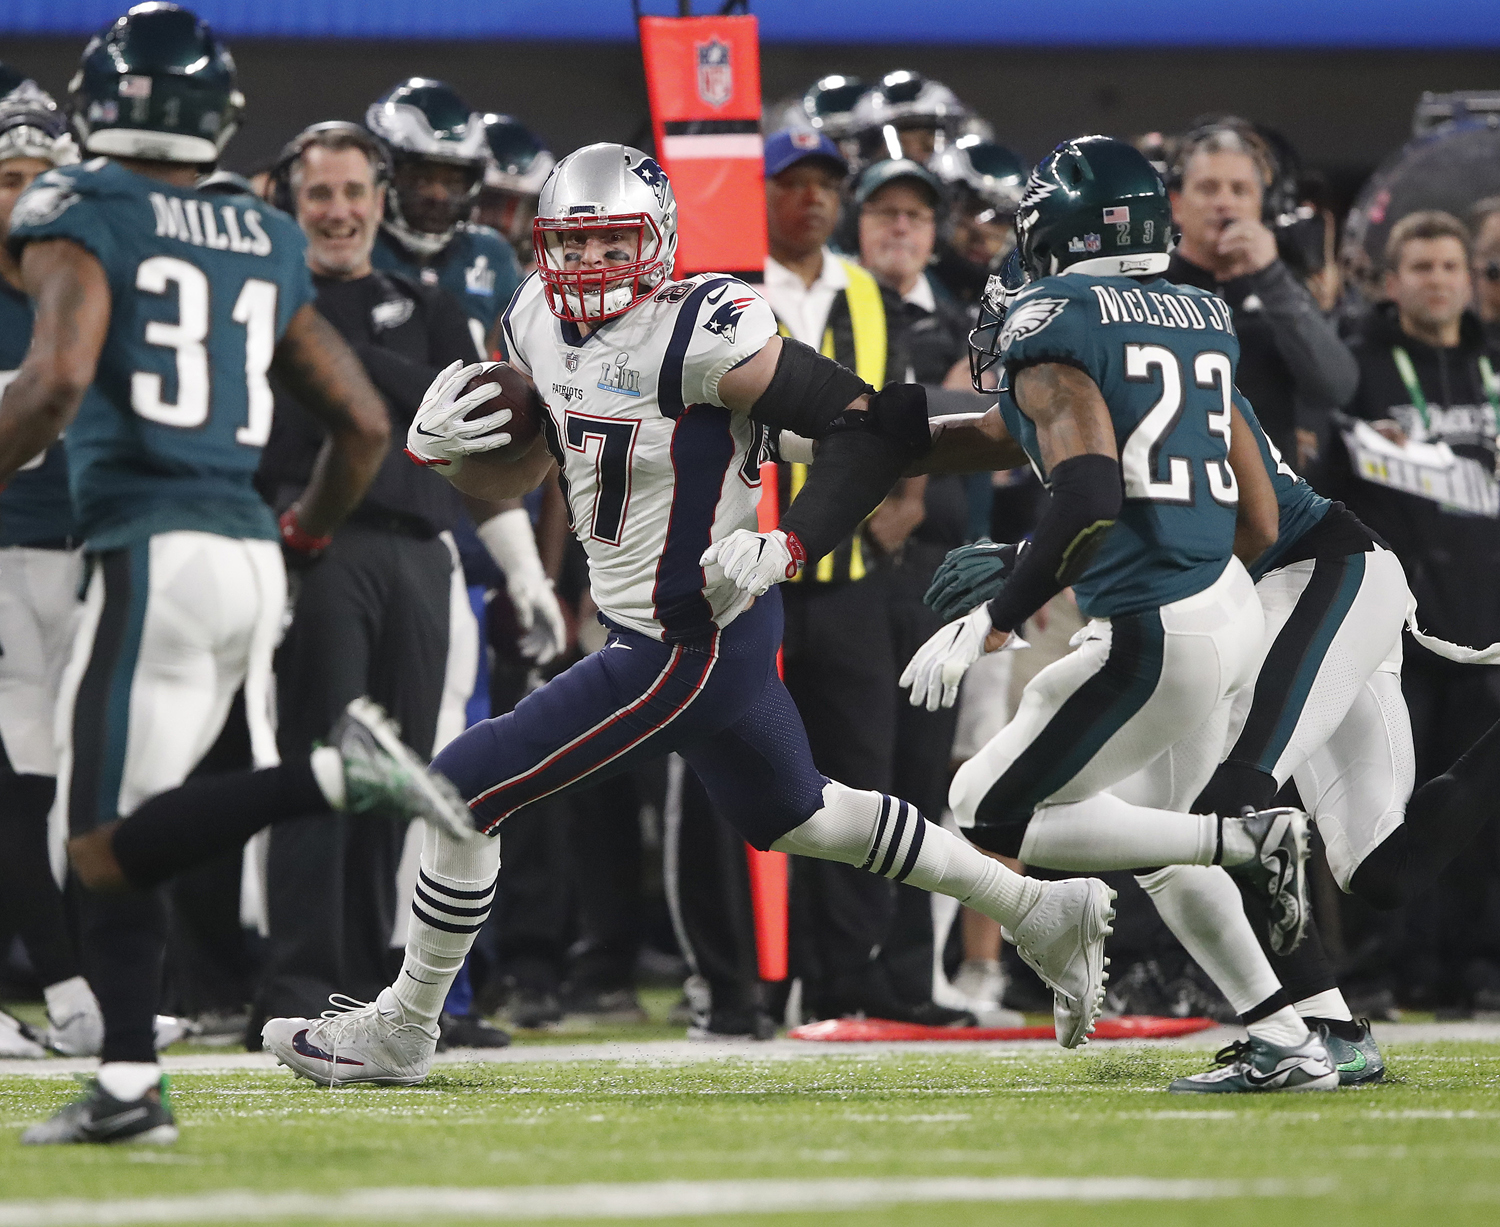 New England Patriots tight end Rob Gronkowski runs down the field after making a catch in Super Bowl LII Feb. 4, 2018, in Minneapolis. The Eagles won, 41-33.